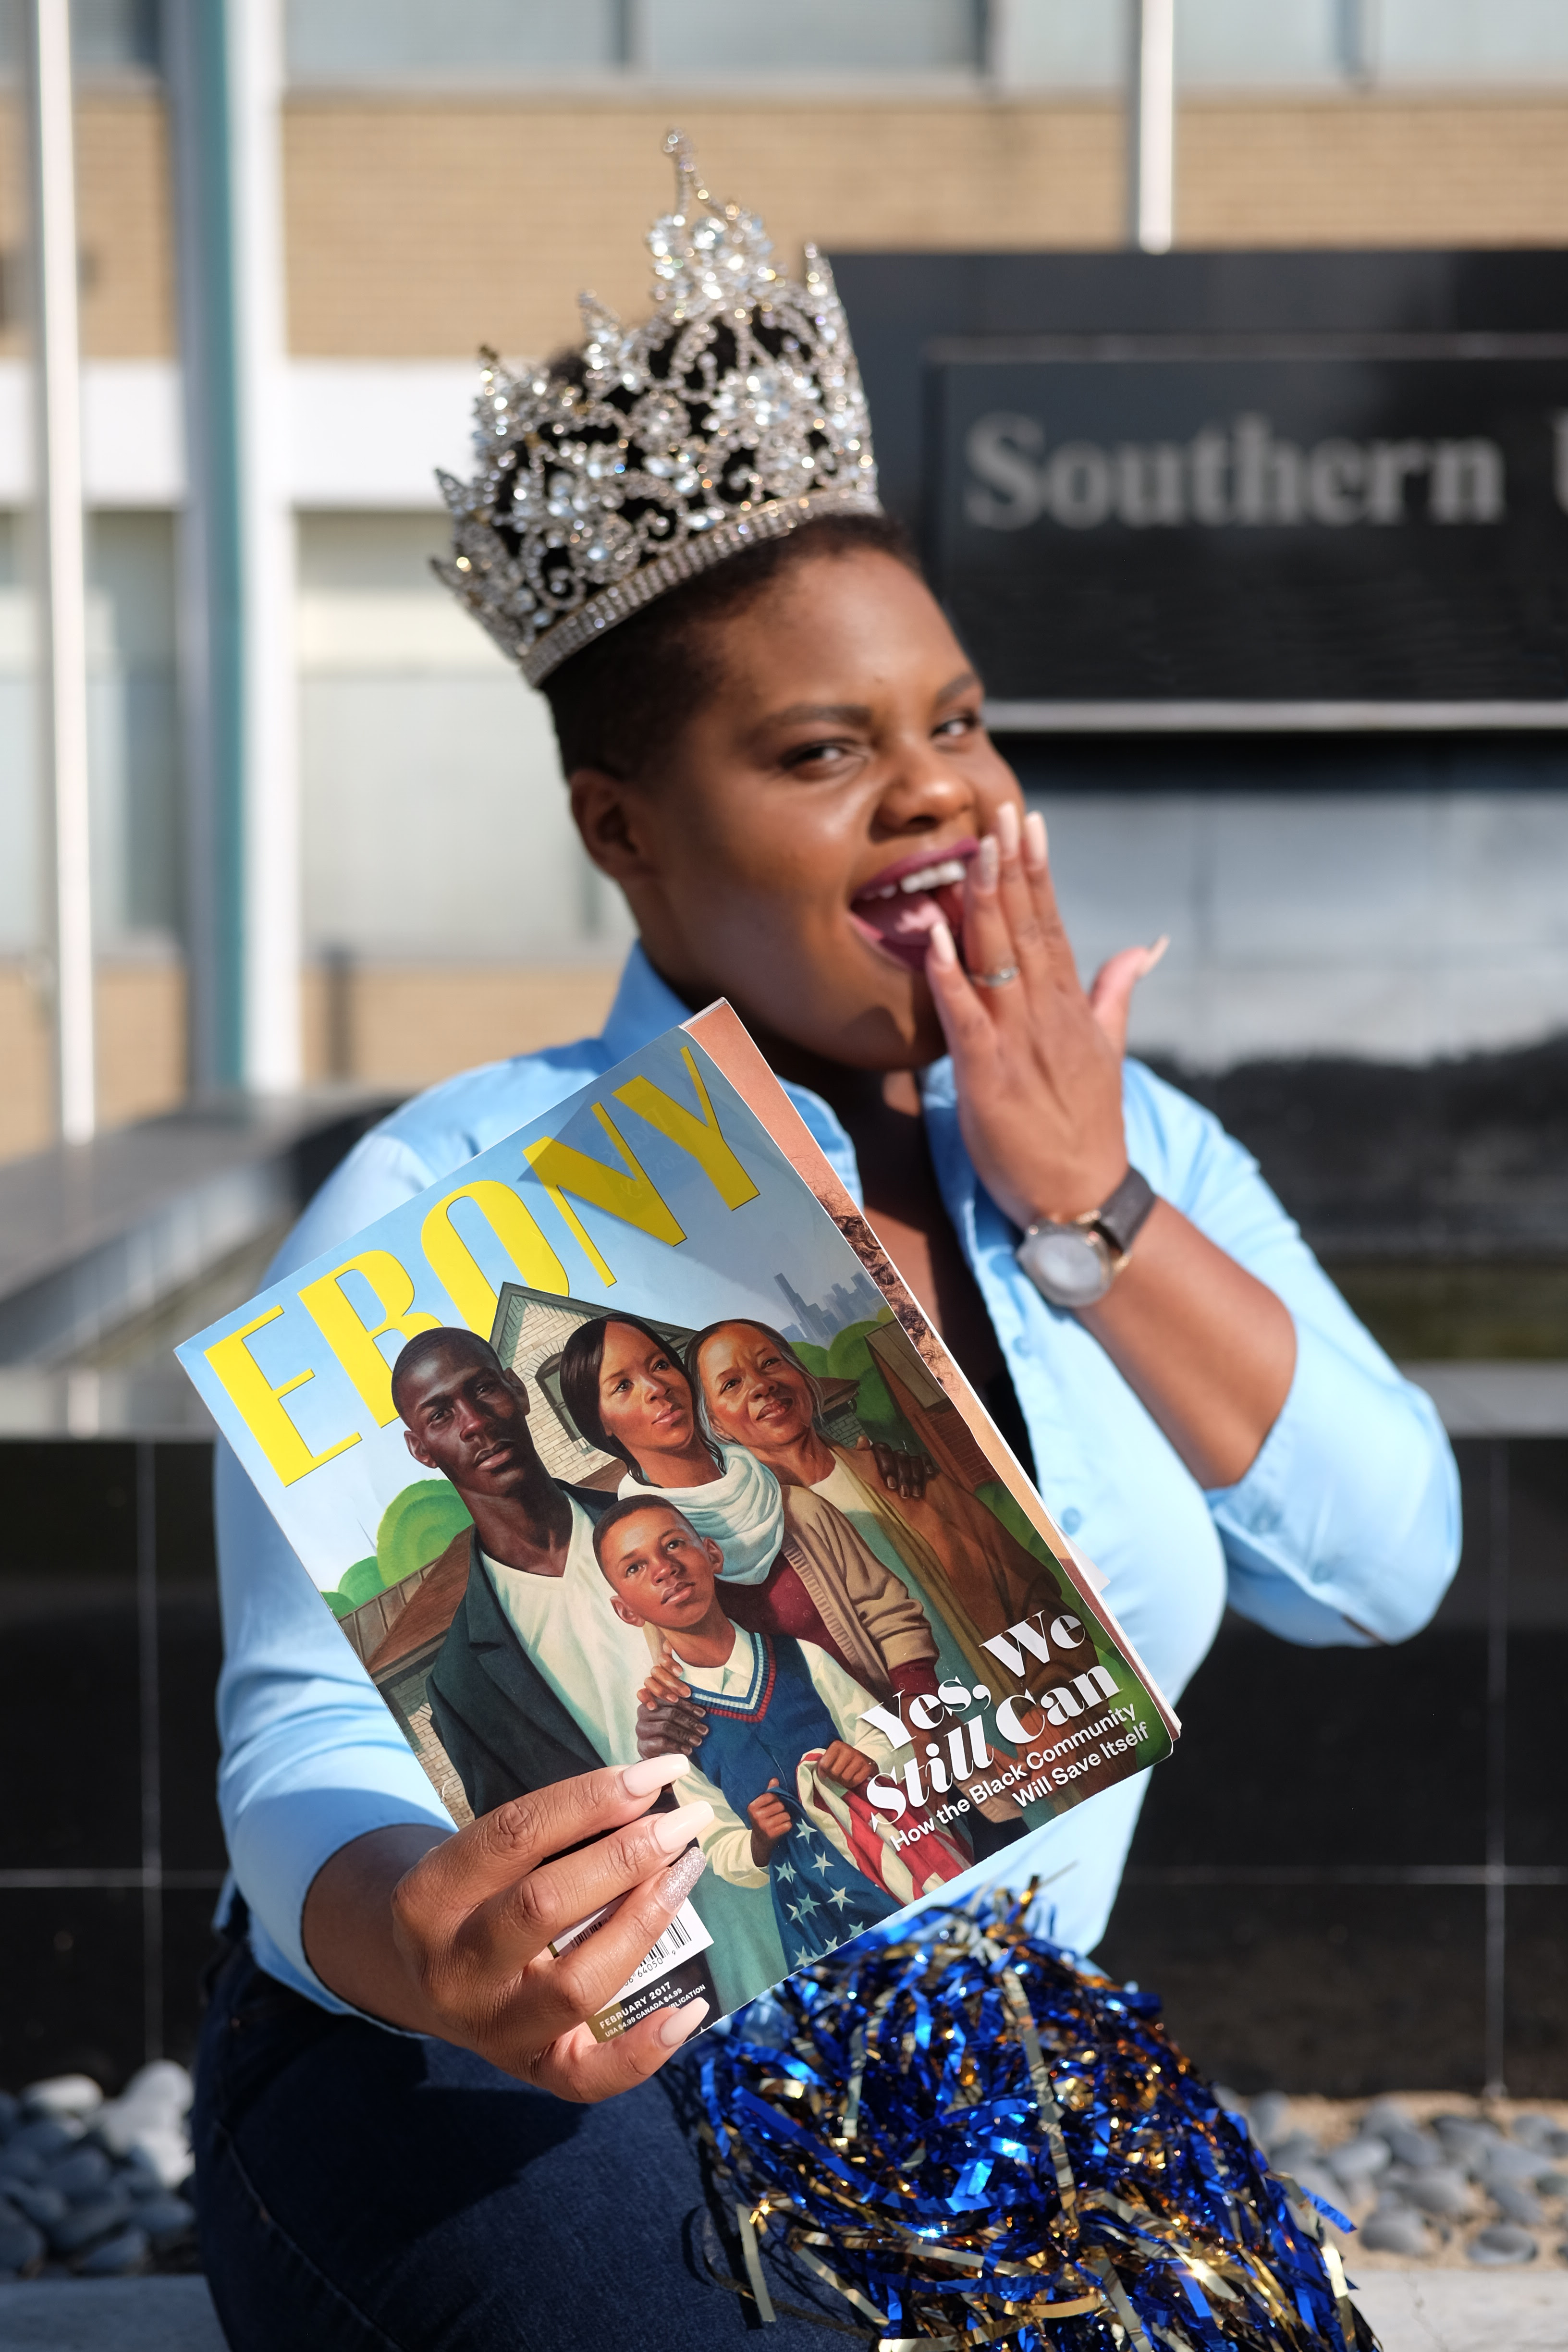 Miss SU lands number one spot for Ebony's HBCU Campus Queens competition  Southern University